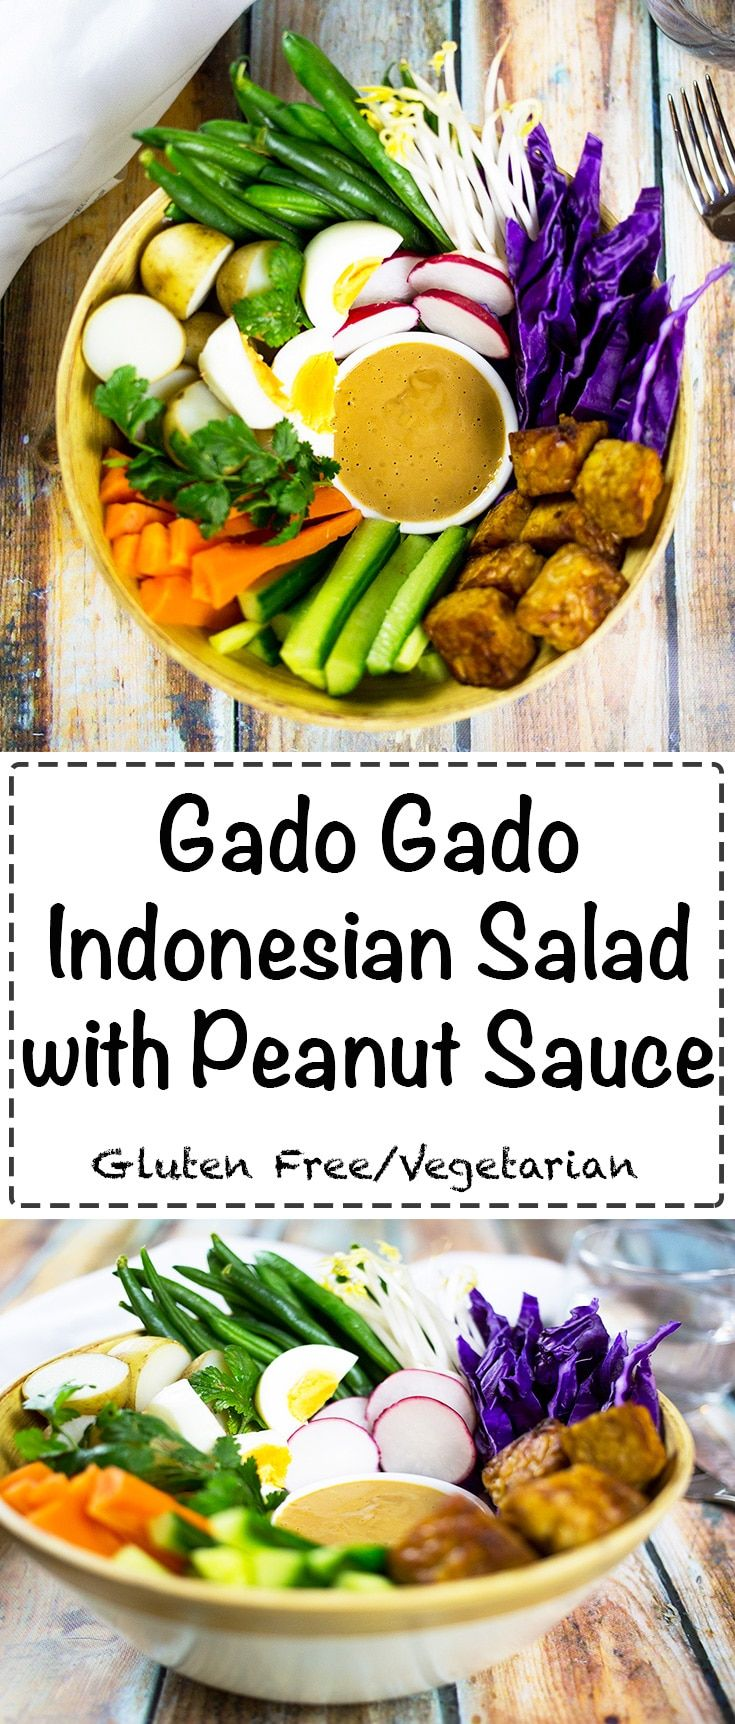 Gado gado indonesian salad with peanut sauce a healthy and tasty recipes gado gado indonesian salad with peanut sauce a healthy and tasty vegetarian salad real food forumfinder Gallery